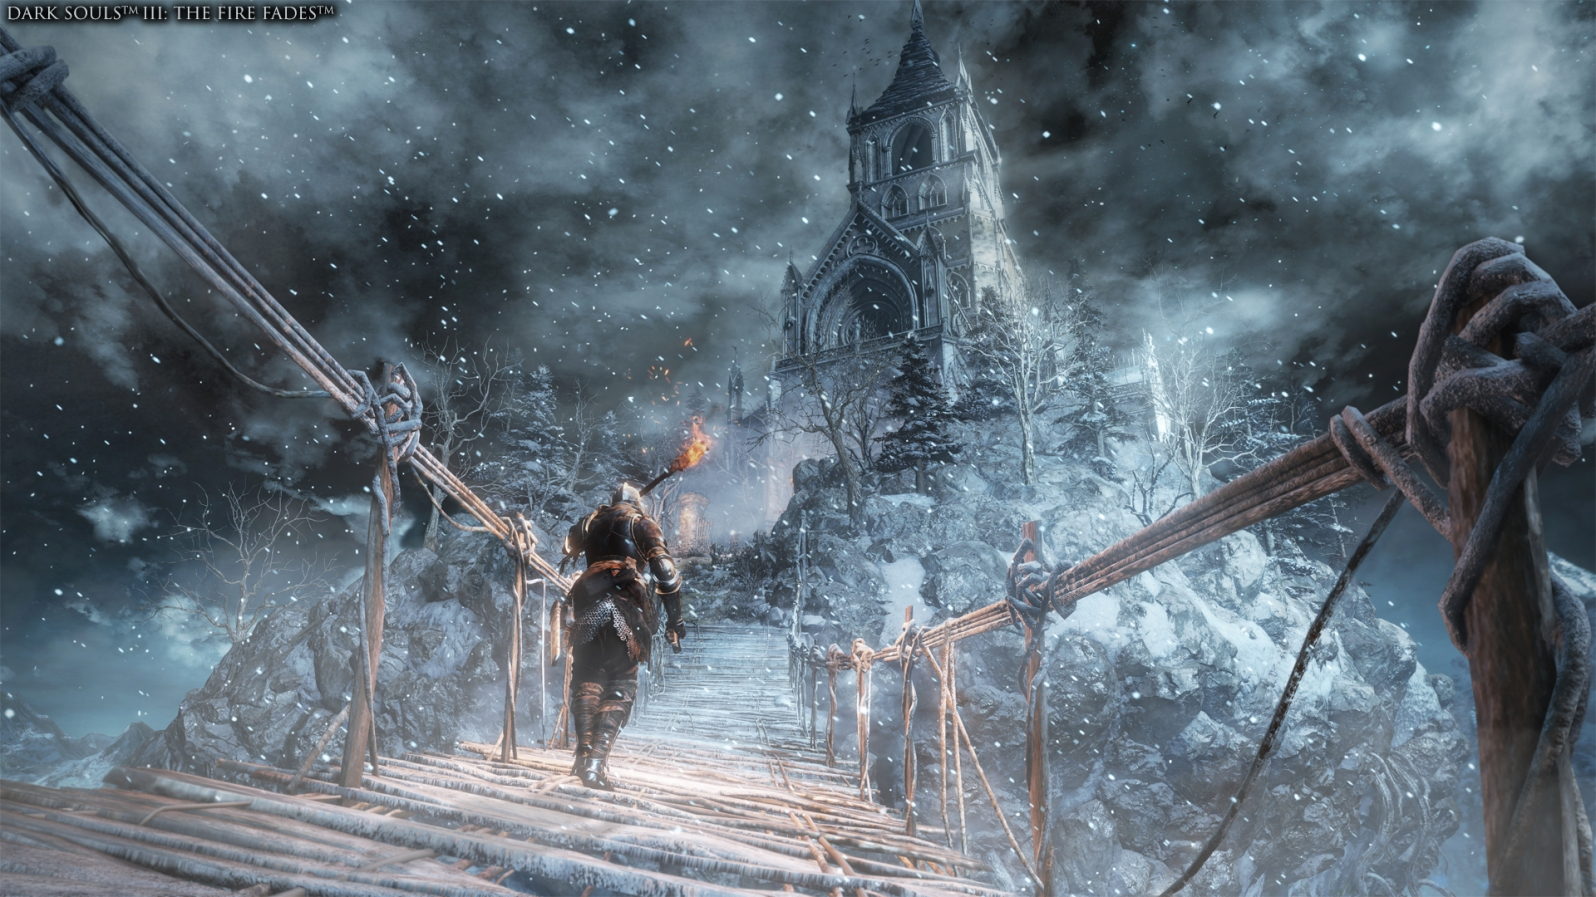 Quelle: Bandai Namco - Dark Souls III: The Fire Fades